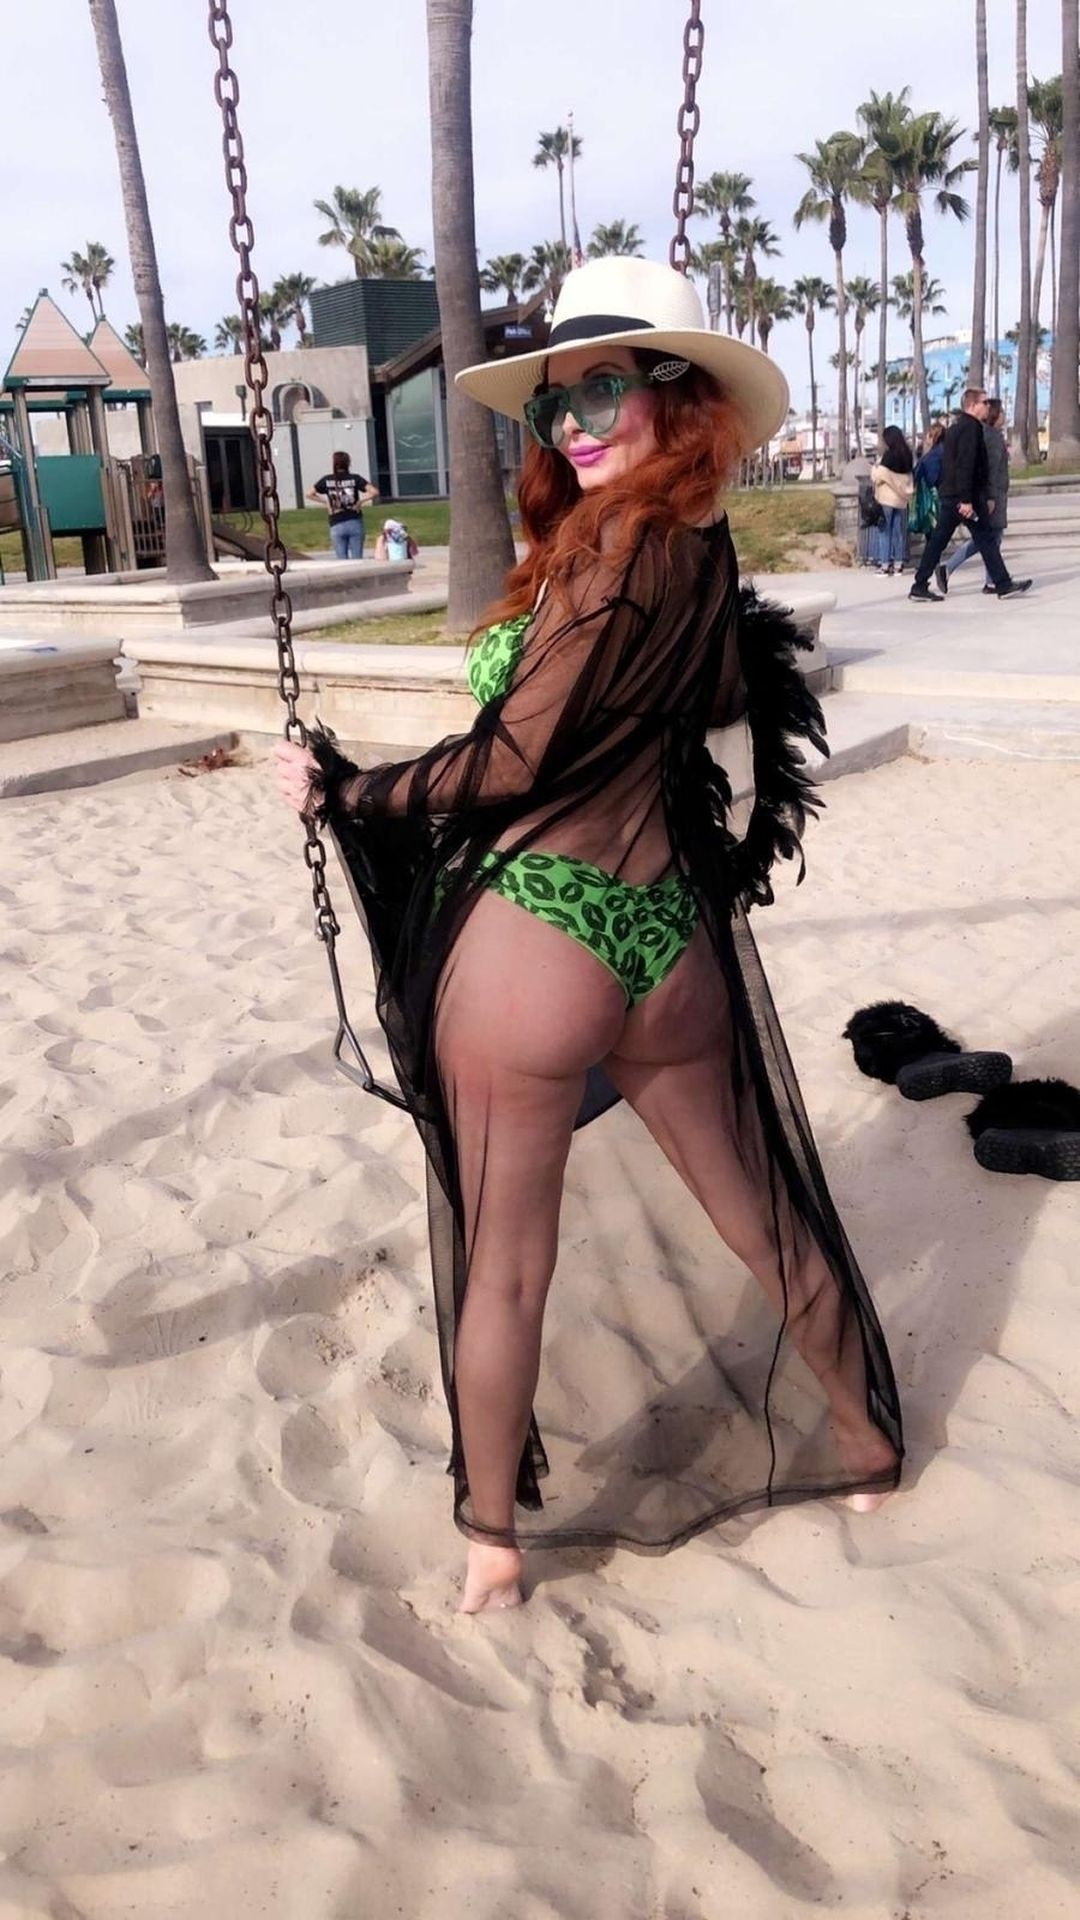 Phoebe Price Shows Off Her Curves In Venice Beach 0003